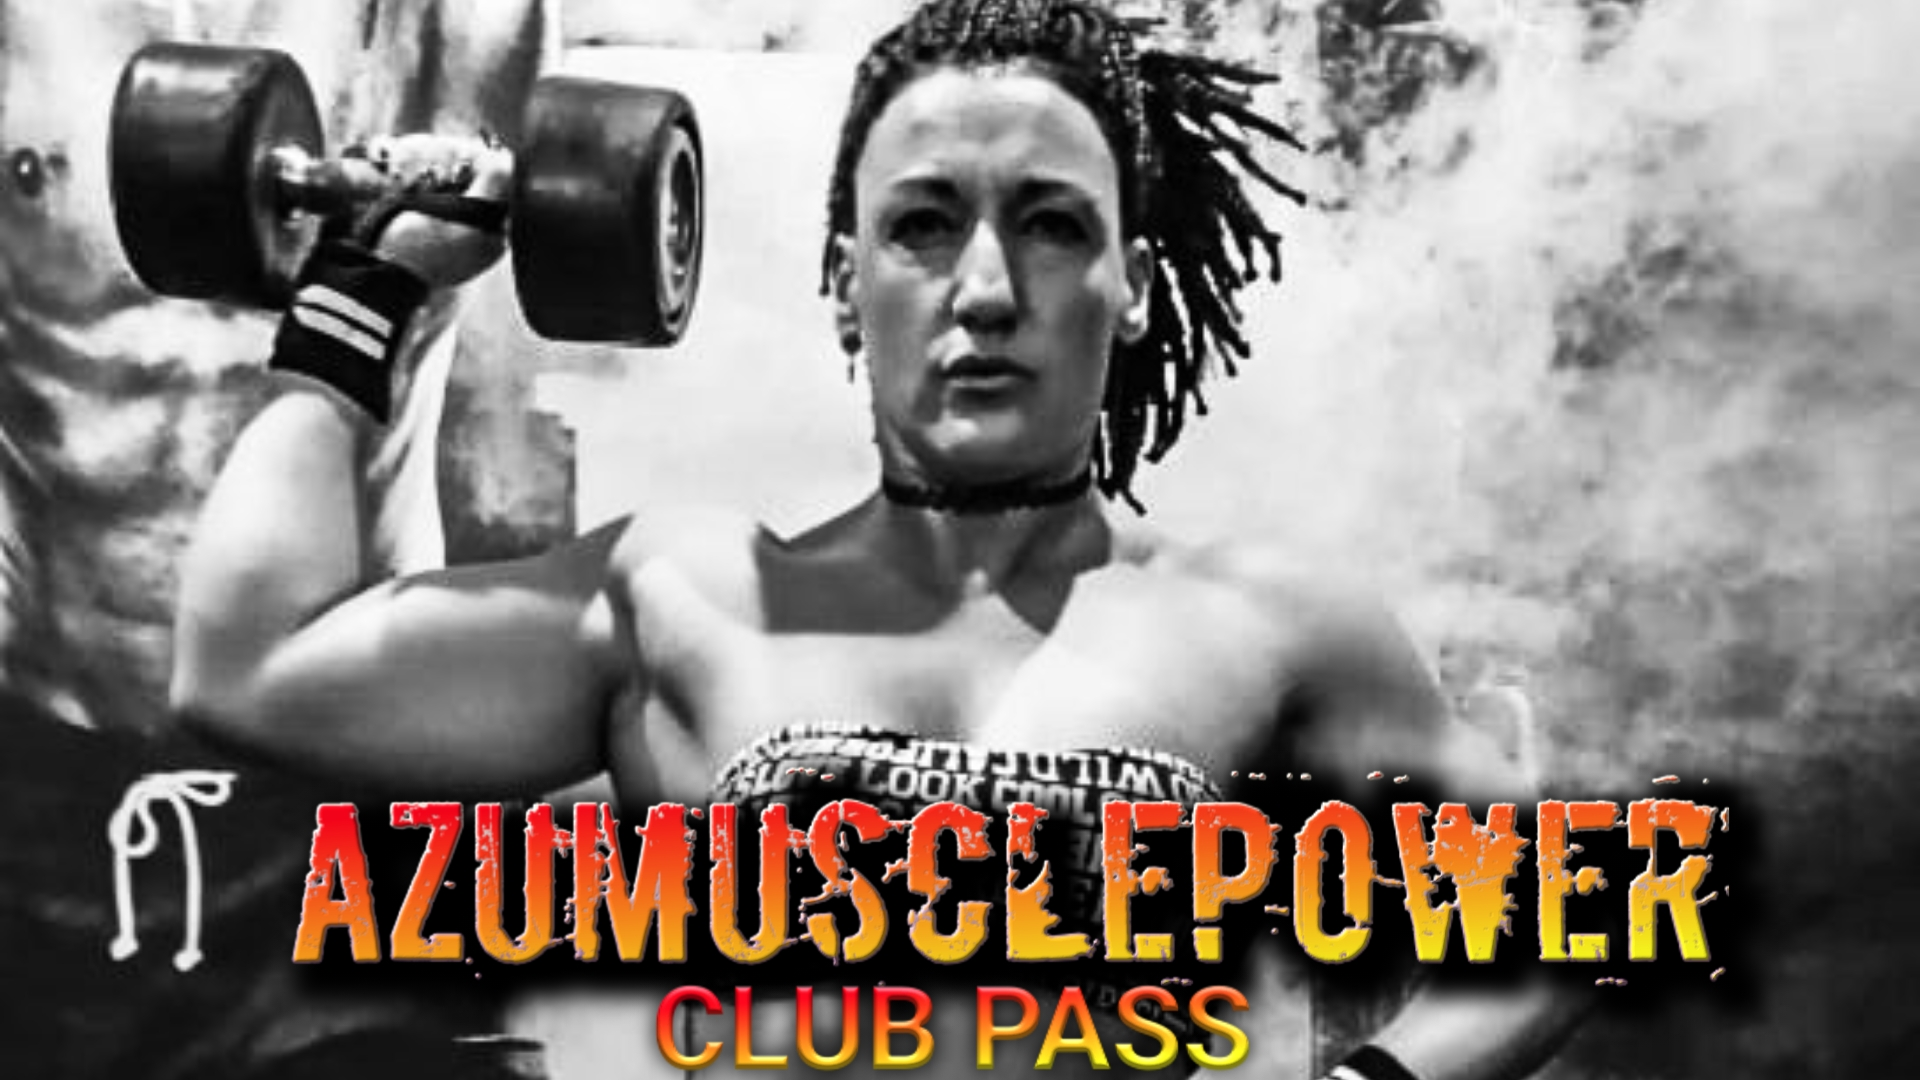 Azumusclepower Club Pass